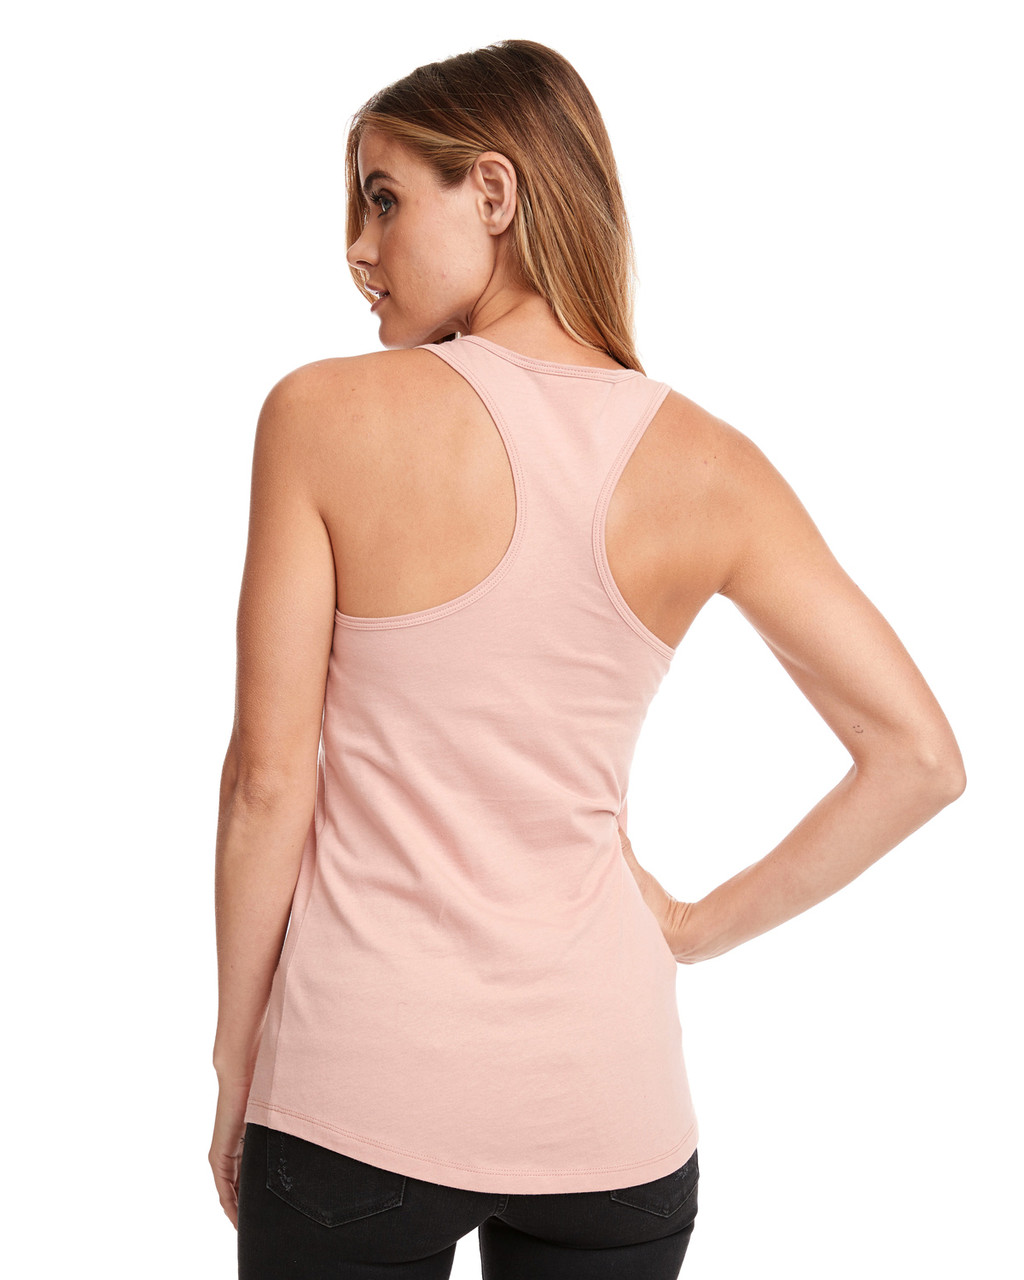 Desert Pink - Back, N1533 Next Level Ideal Racerback Tank Top | Blankclothing.ca